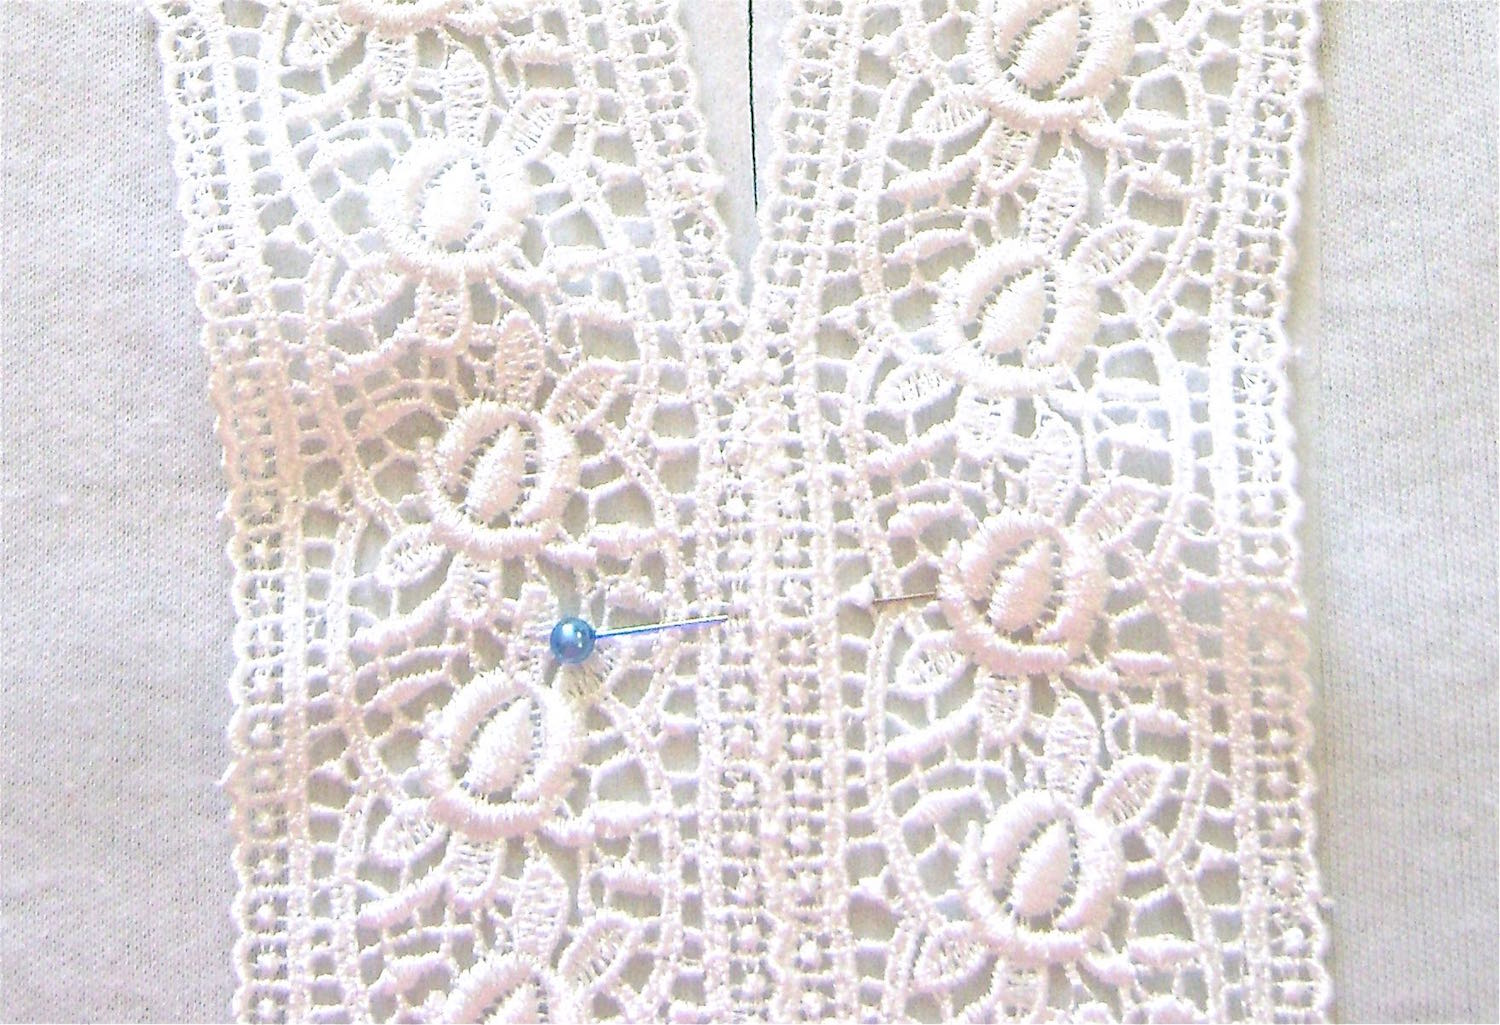 step 12 - Because the lace strips curve outward at the neck area, the outside edges will not lay smooth.  Remedy this by sewing a gathering stitch on the outside edges of the lace to ease in the extra fullness.